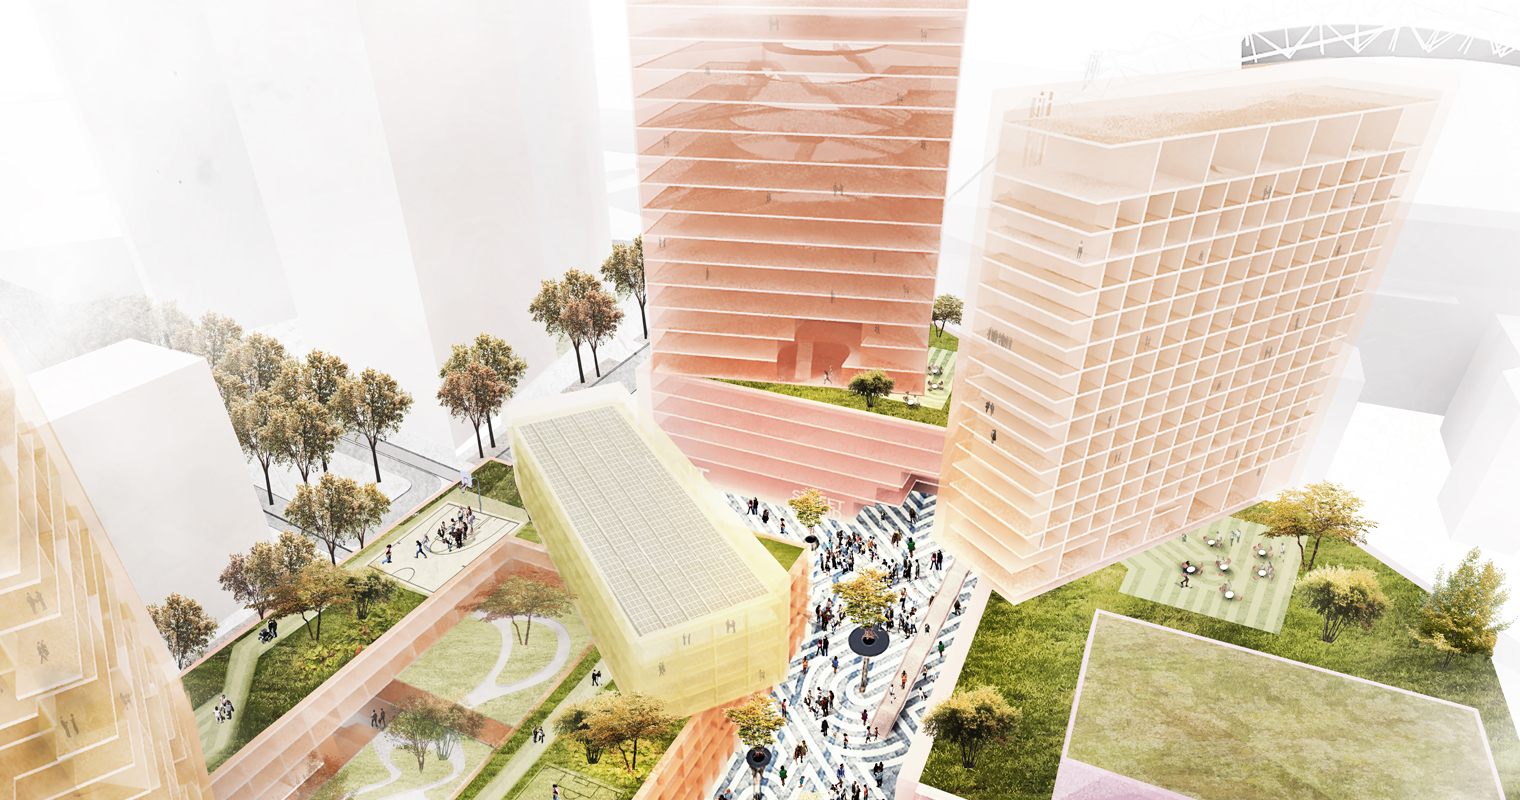 MVRDV designs Urban Interactive District situated next to the Johan Cruijff ArenA in Amsterdam